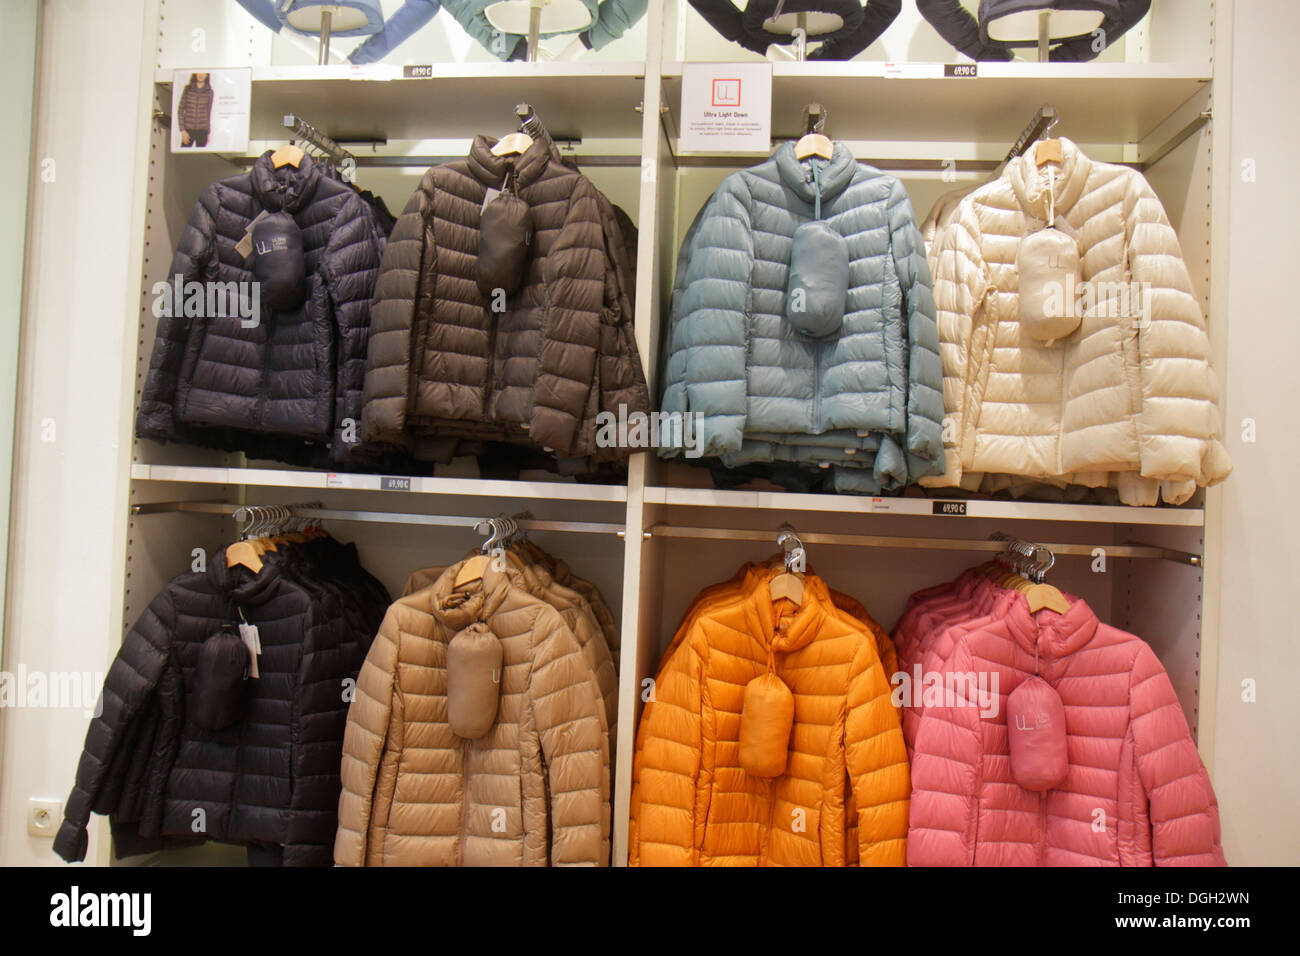 Paris France Europe French 9th arrondissement Rue Scribe shopping Uniqlo clothing store fashion insulated coats sale retail disp - Stock Image